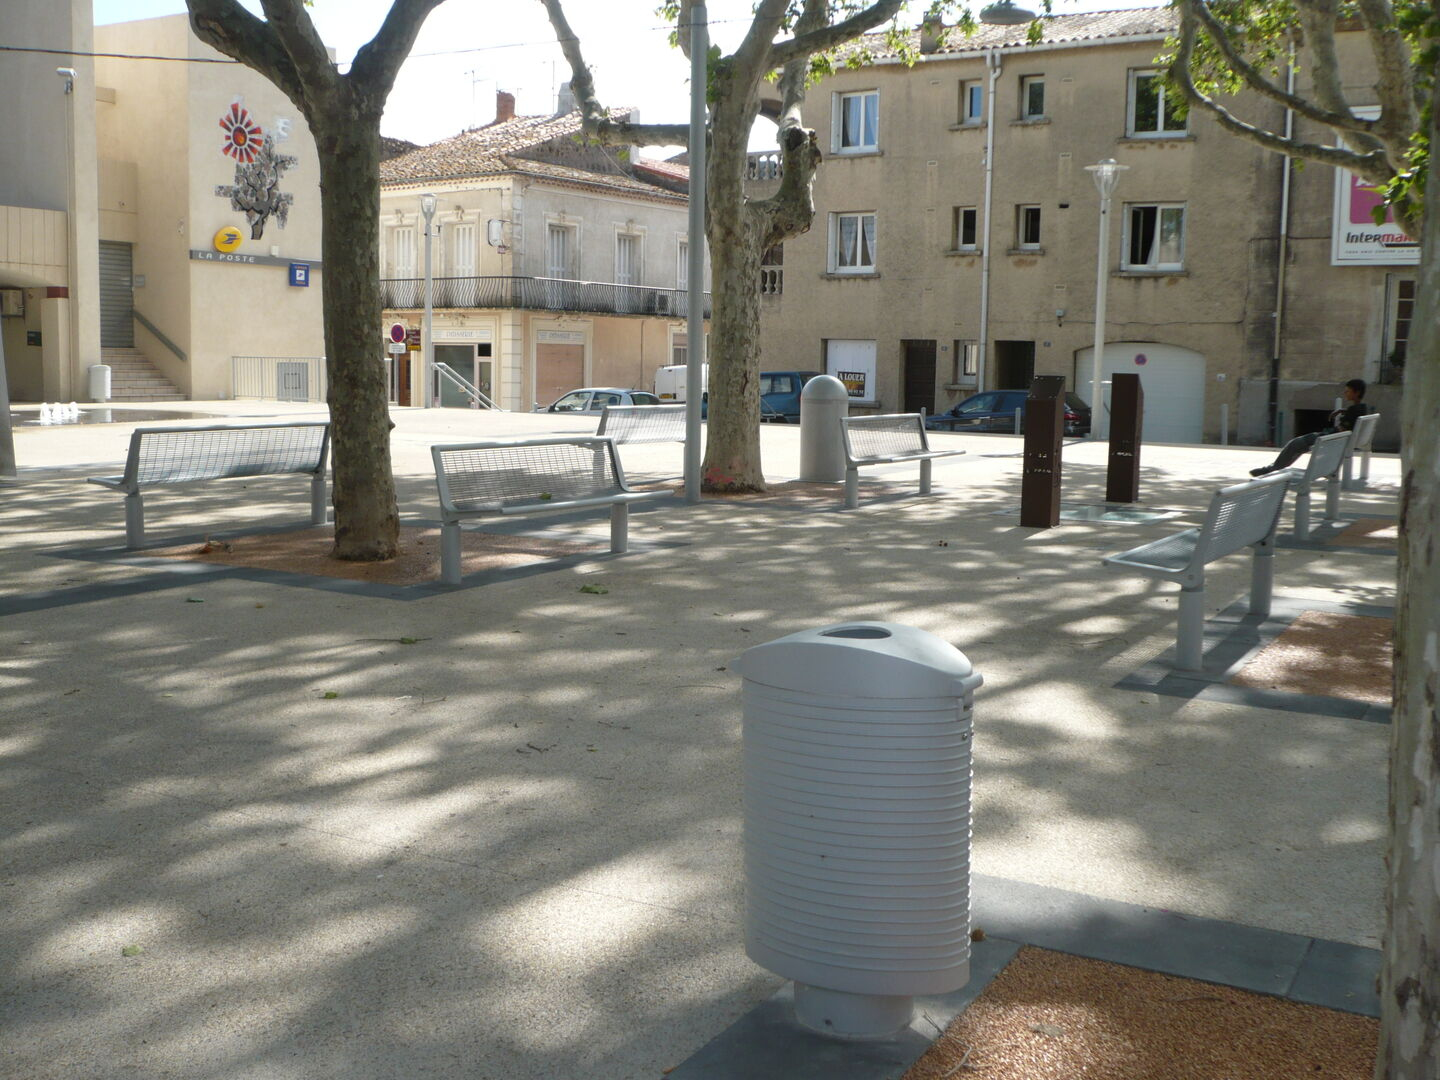 Square Mobilier Urbain Collection De Mobilier Urbain Ovaligne Square